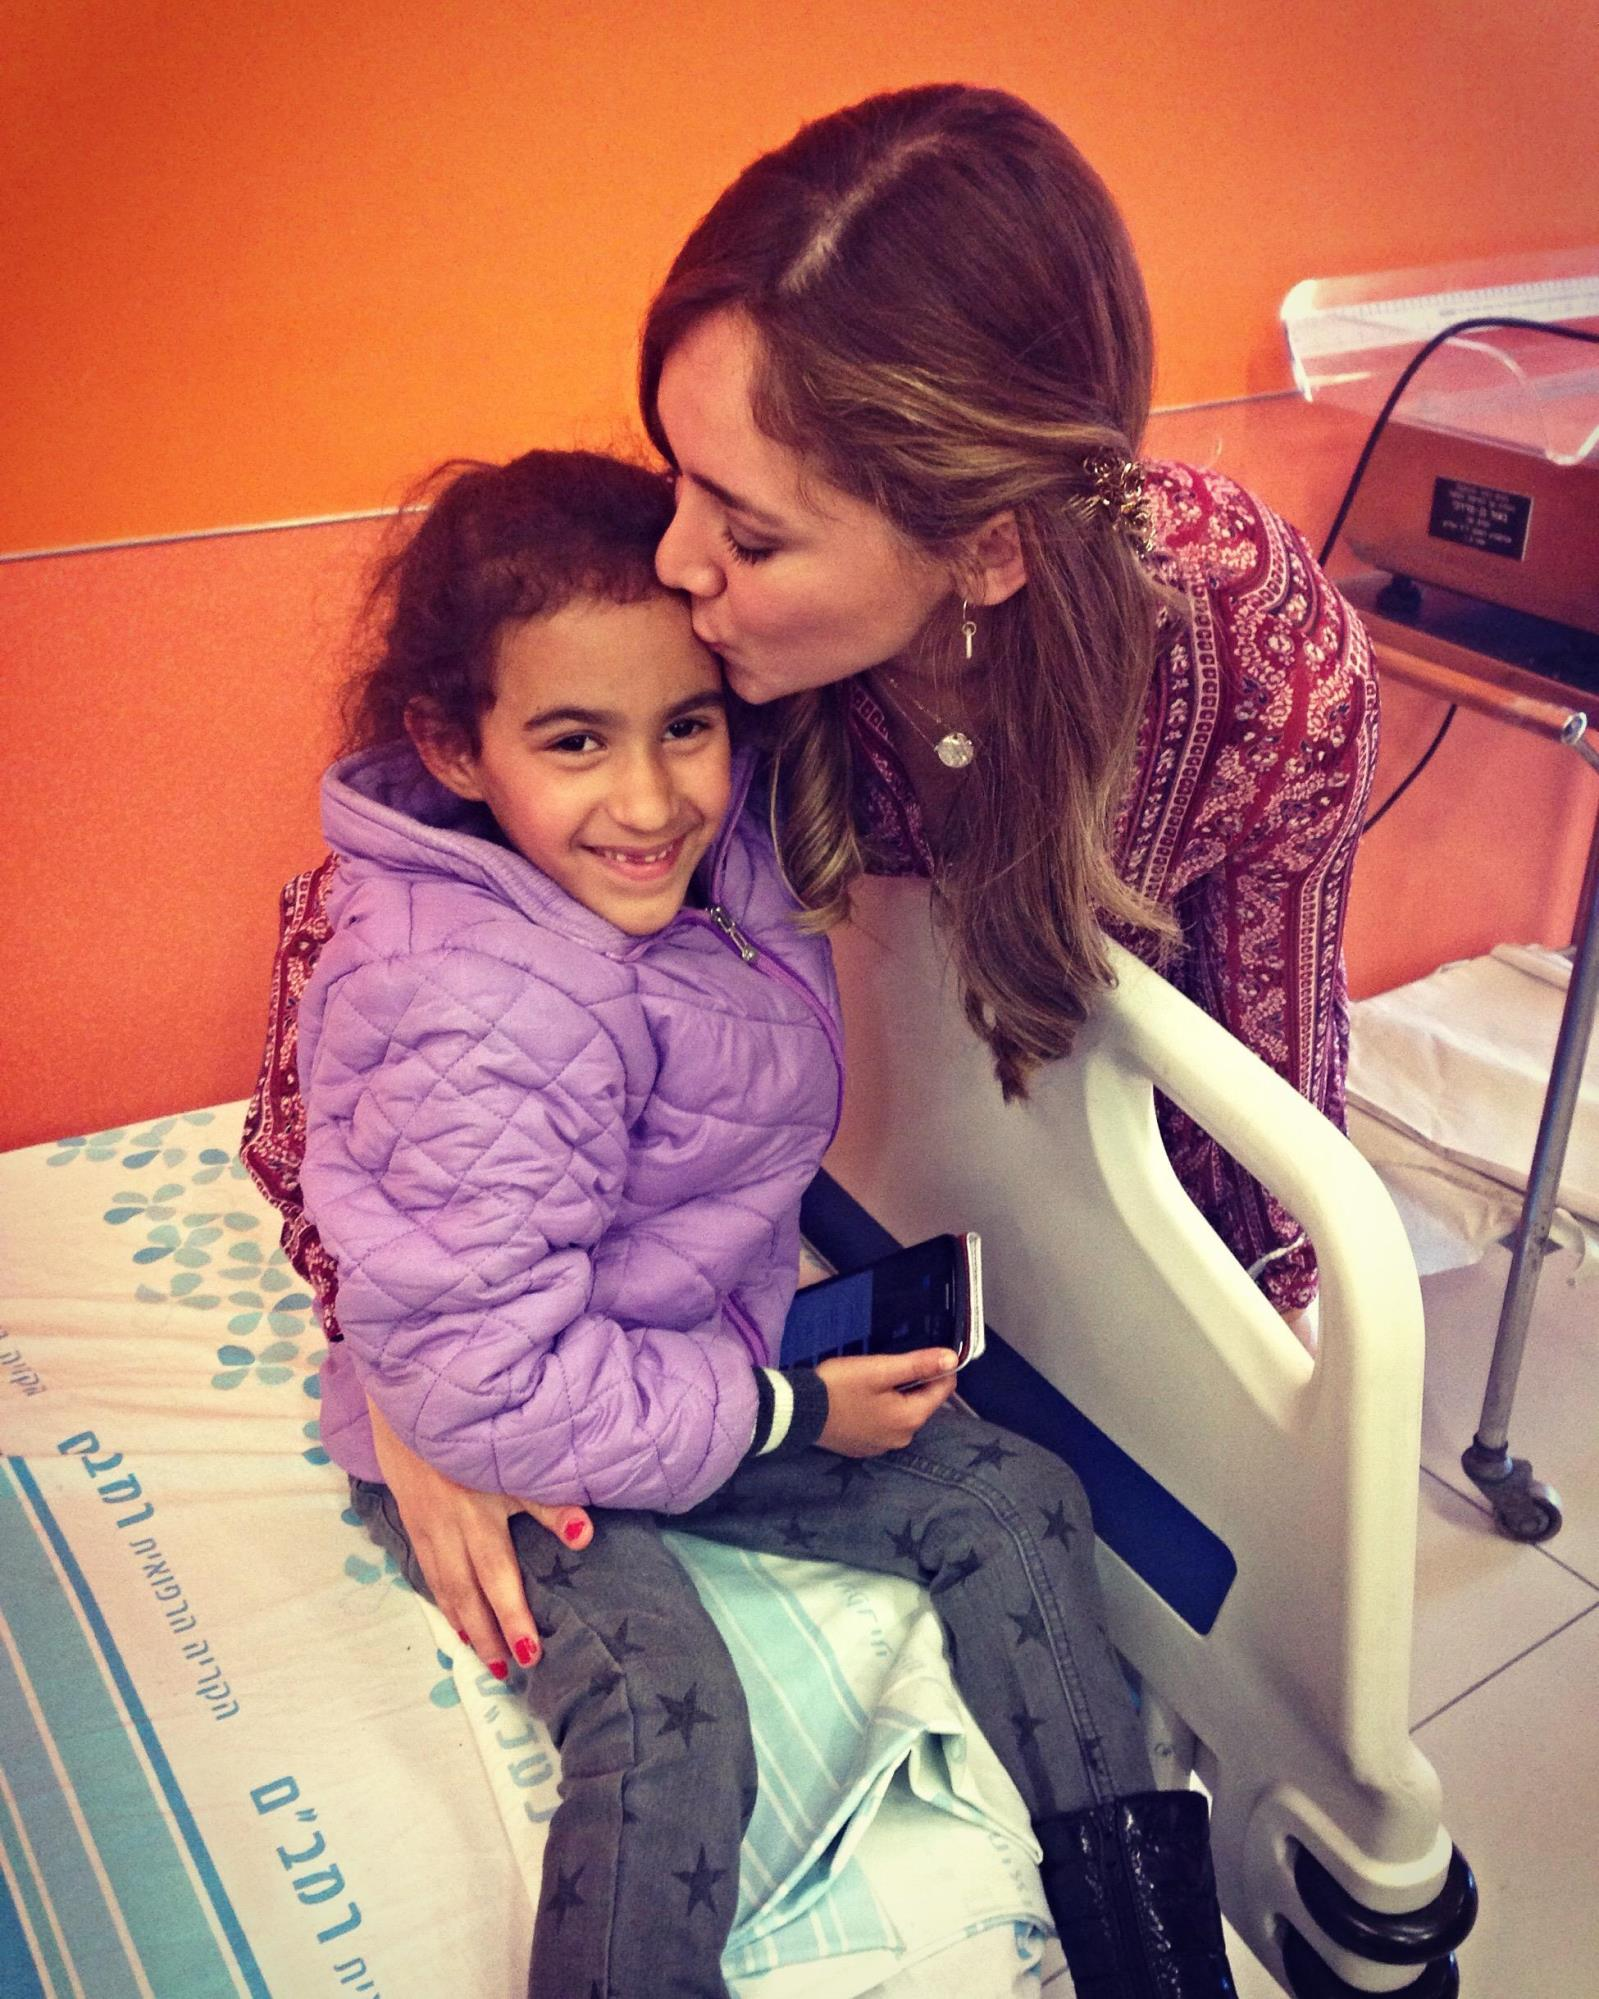 Telenovela actress Sherlyn Gonzalez comforting a young patient at Rambam Health Care Campus. Photo courtesy of America's Voices in Israel